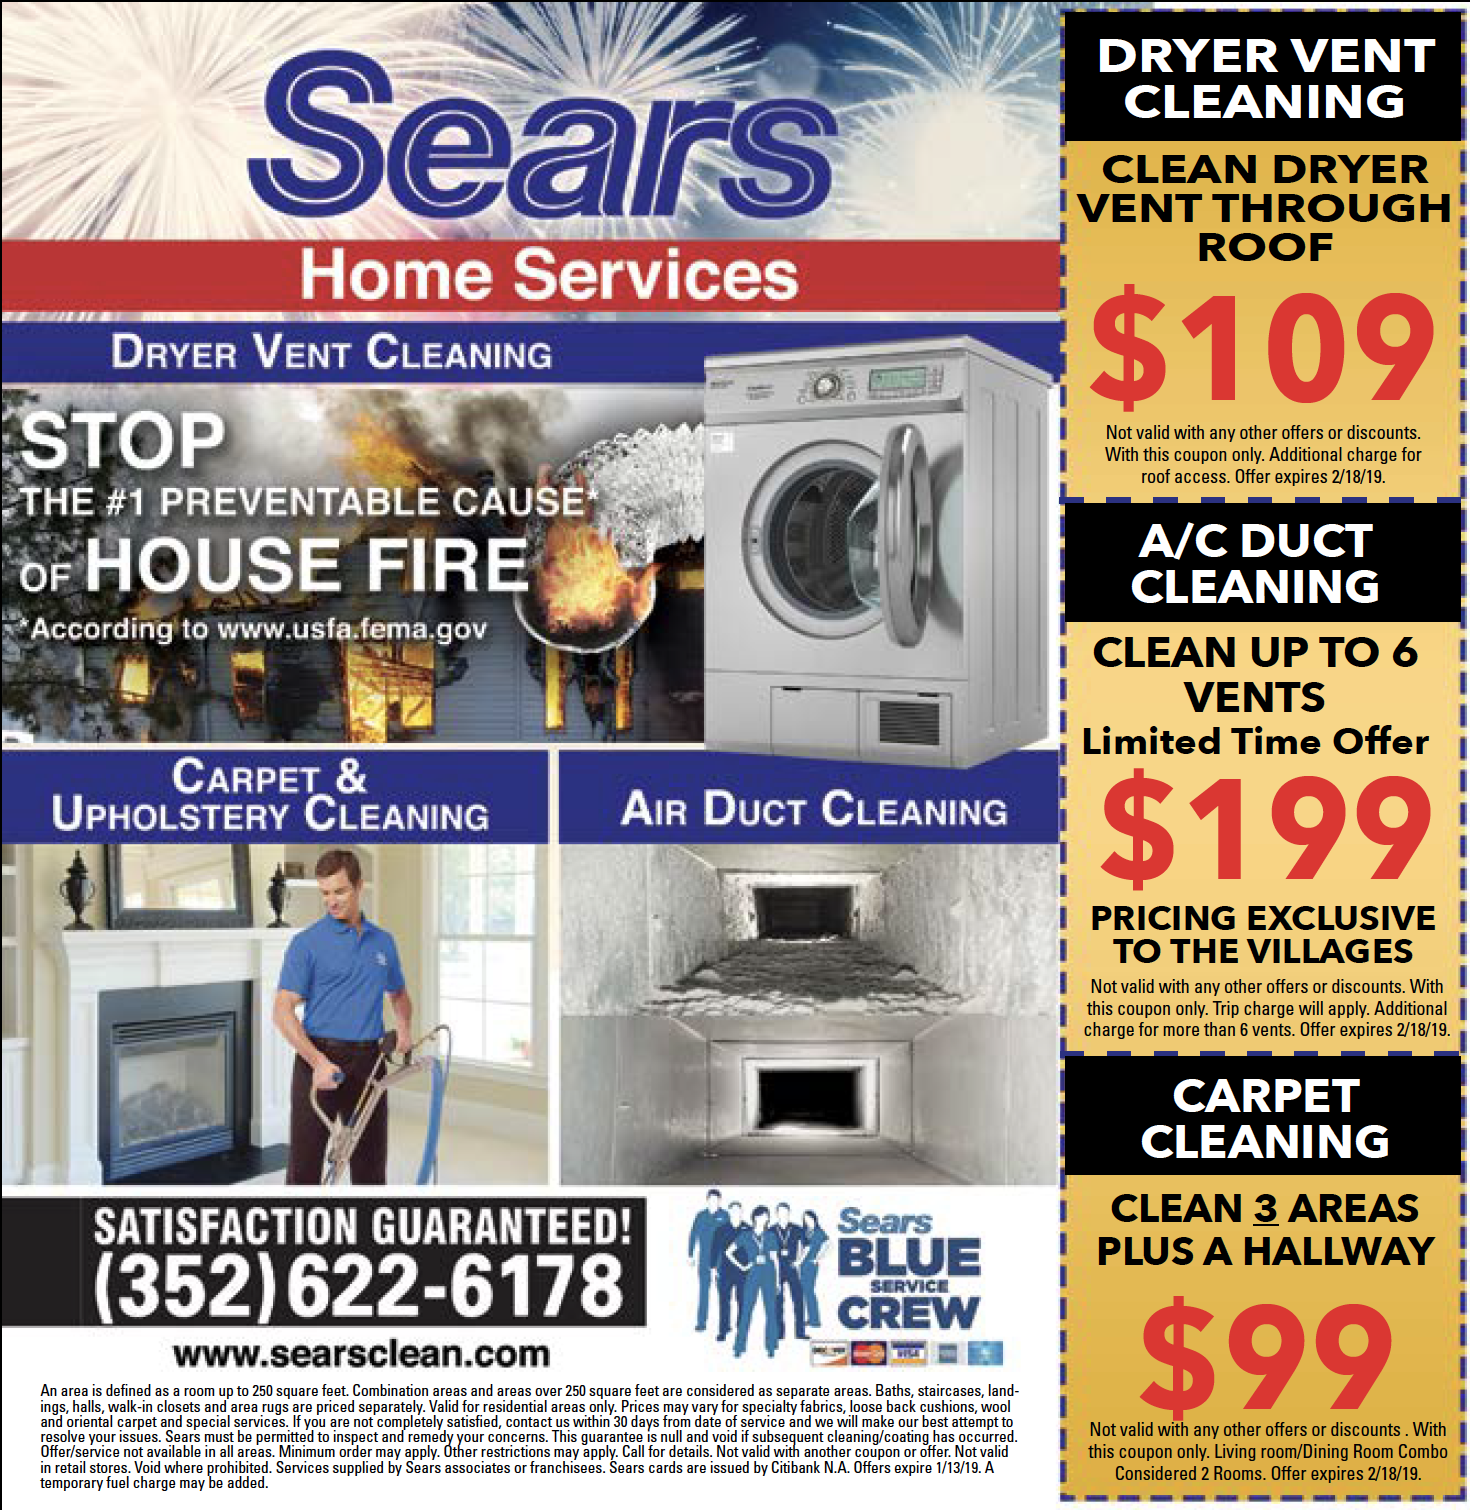 SEARS Home Services Duct cleaning, Vent cleaning, Clean